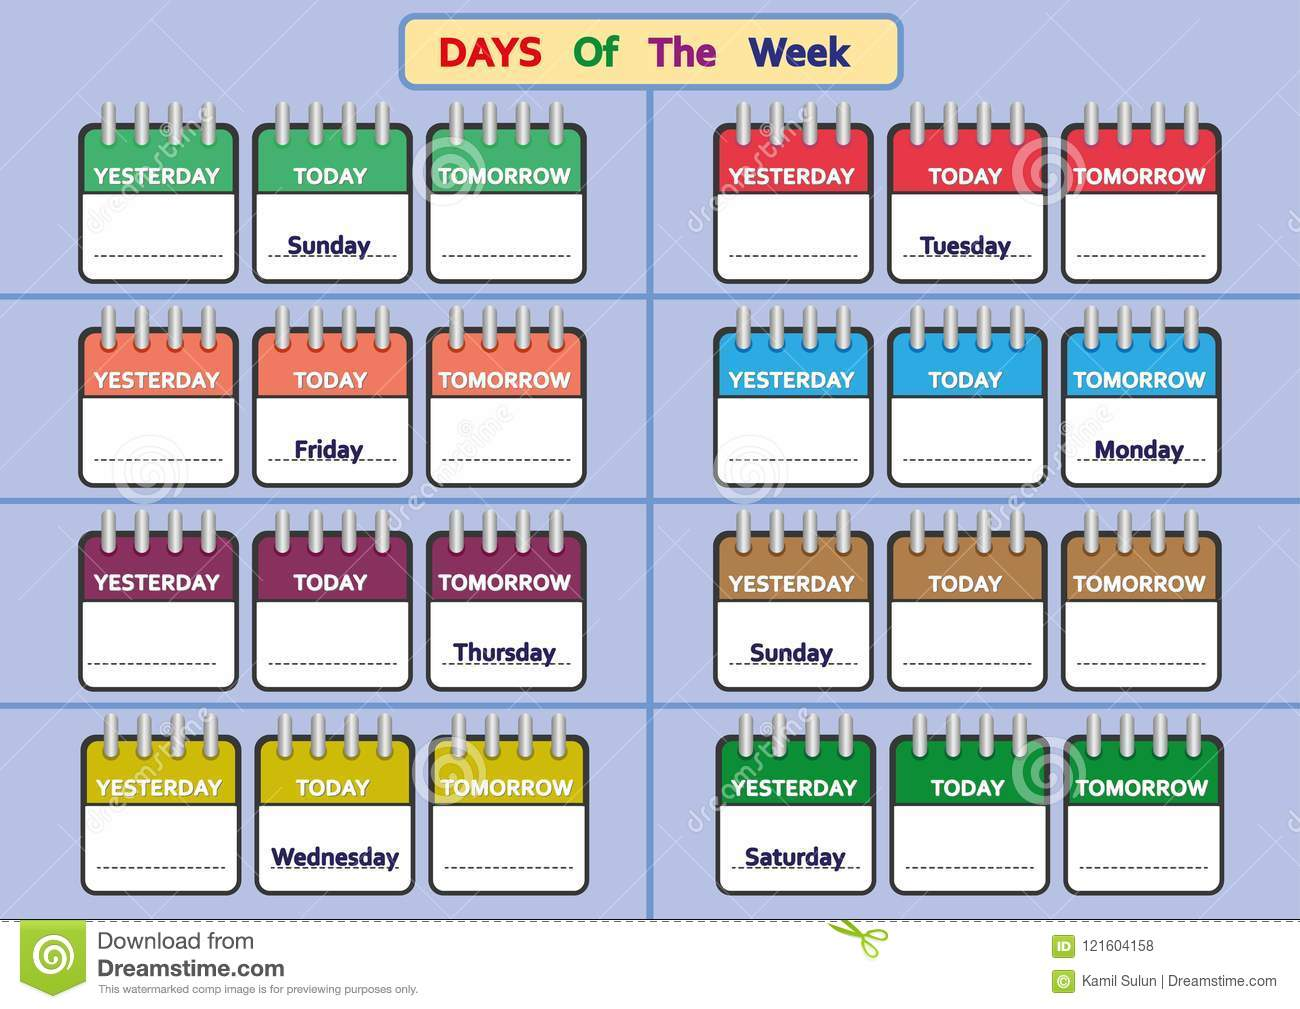 304 FREE ESL Days of the week worksheets furthermore Kindergarten Writing Worksheets  Days of the week   Greats also Days of the Week Worksheets   Printable Worksheets   Pinterest further Days of the Week Worksheets   All Kids  work as well  together with Days of the Week   ESL worksheet by Sasha ru as well 108 FREE Months Days of The Week Worksheets additionally Printables days of the week   Download them or print likewise English To Spanish Days Of The Week Worksheets   Learning S le for moreover Spelling Days Of The Week Worksheets Days Of The Week Word Scramble further Days of the Week – Kindergarten English Worksheets – JumpStart furthermore Days of the Week Worksheets   guruparents besides  also Days of the Week Worksheets   guruparents together with French Worksheets Days Of Week and Months Best Of Kindergarten furthermore Days of the Week Yesterday and Tomorrow Worksheet   Worksheet   days. on days of the week worksheets